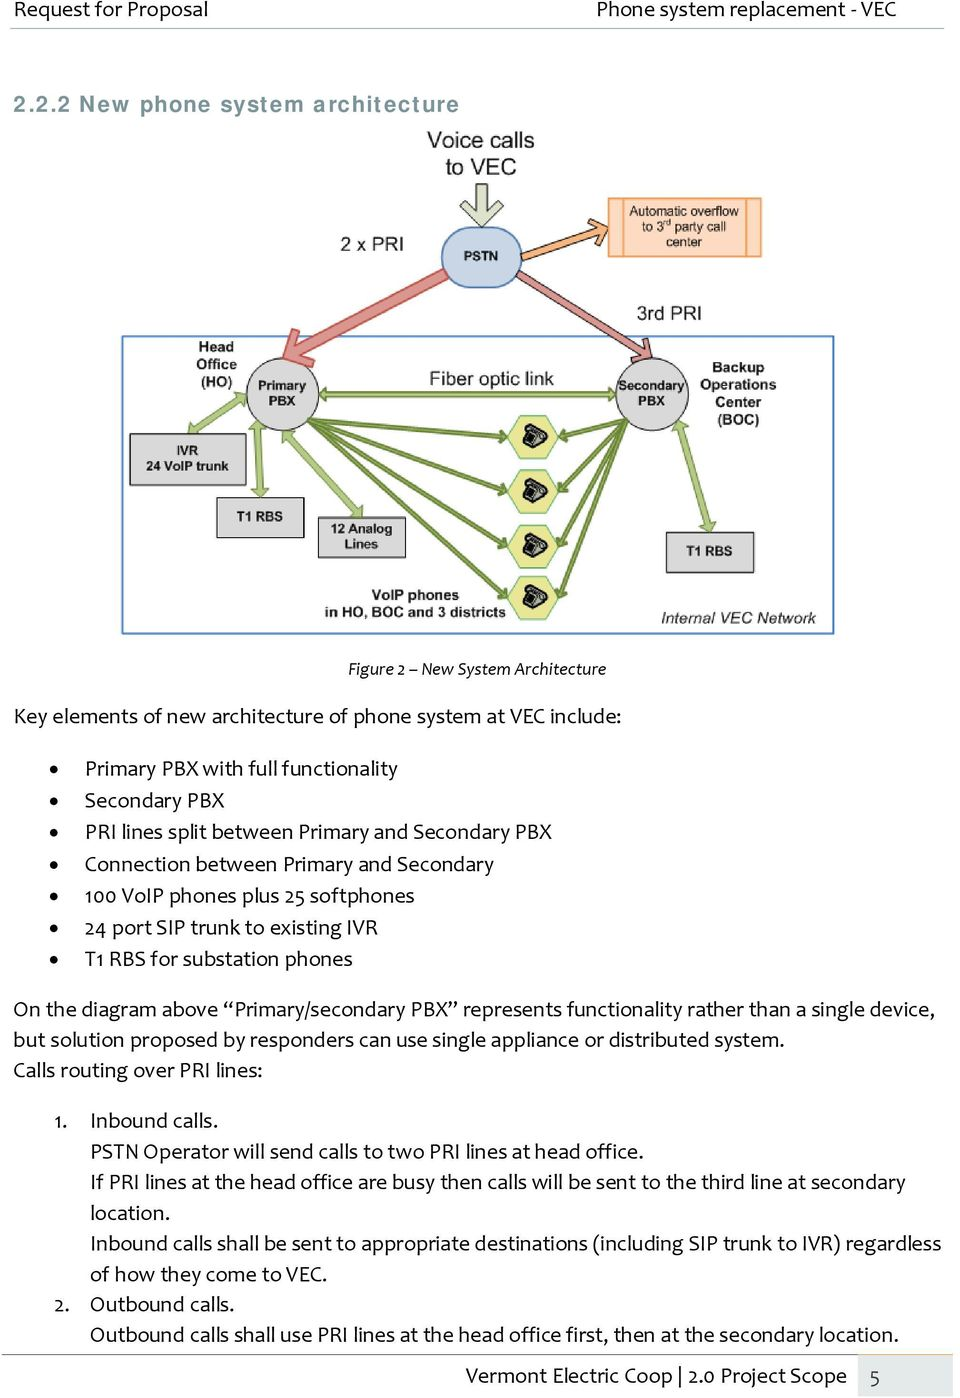 Primary/secondary PBX represents functionality rather than a single device, but solution proposed by responders can use single appliance or distributed system. Calls routing over PRI lines: 1.